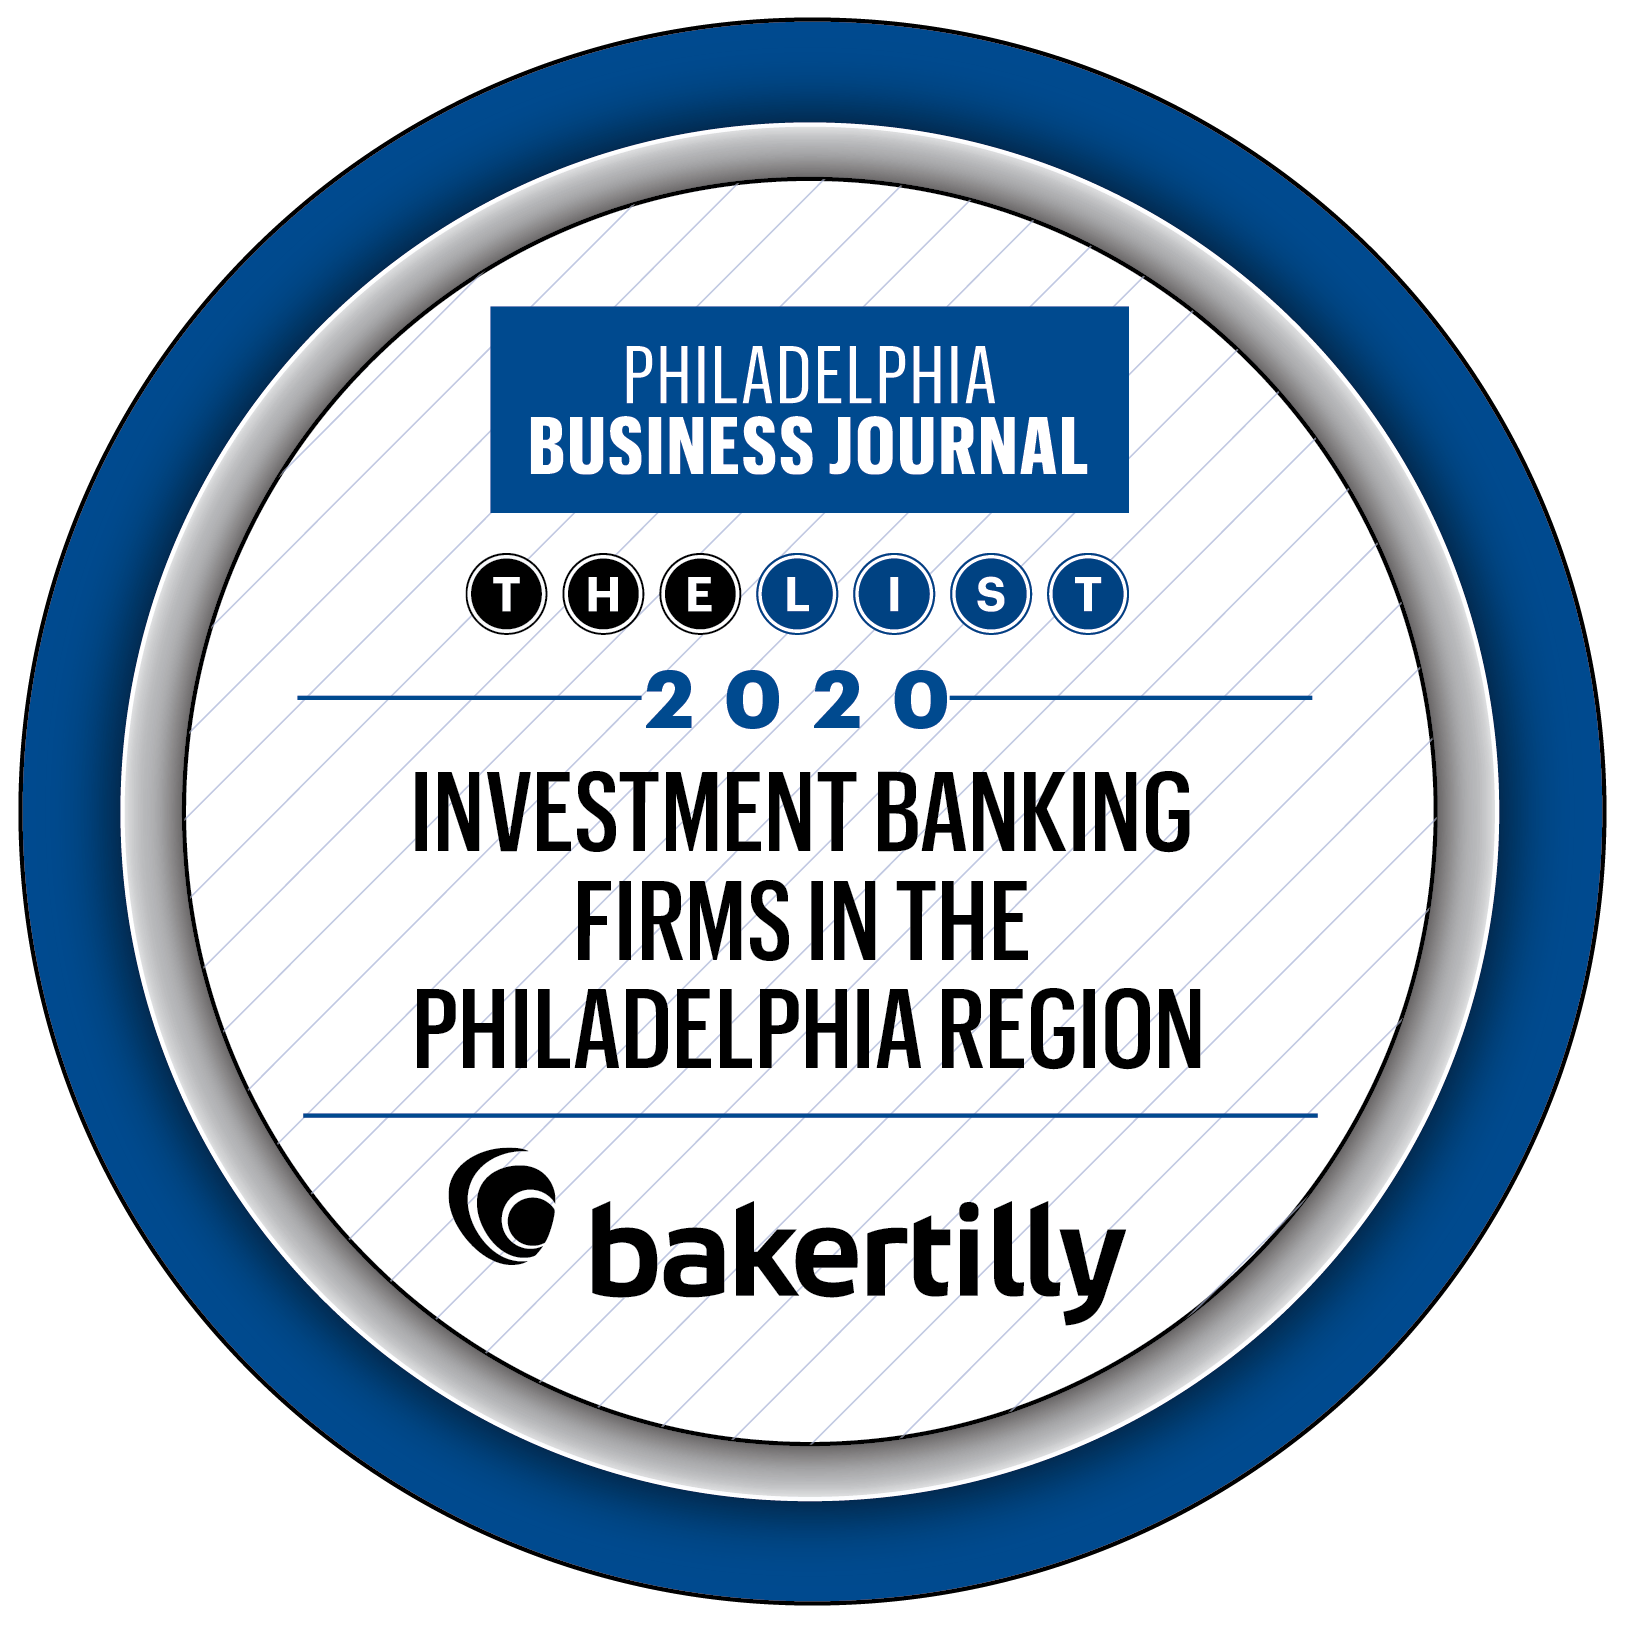 Baker Tilly Named One of Philadelphia's Top Investment Banking Firms by Philadelphia Business Journal 2020